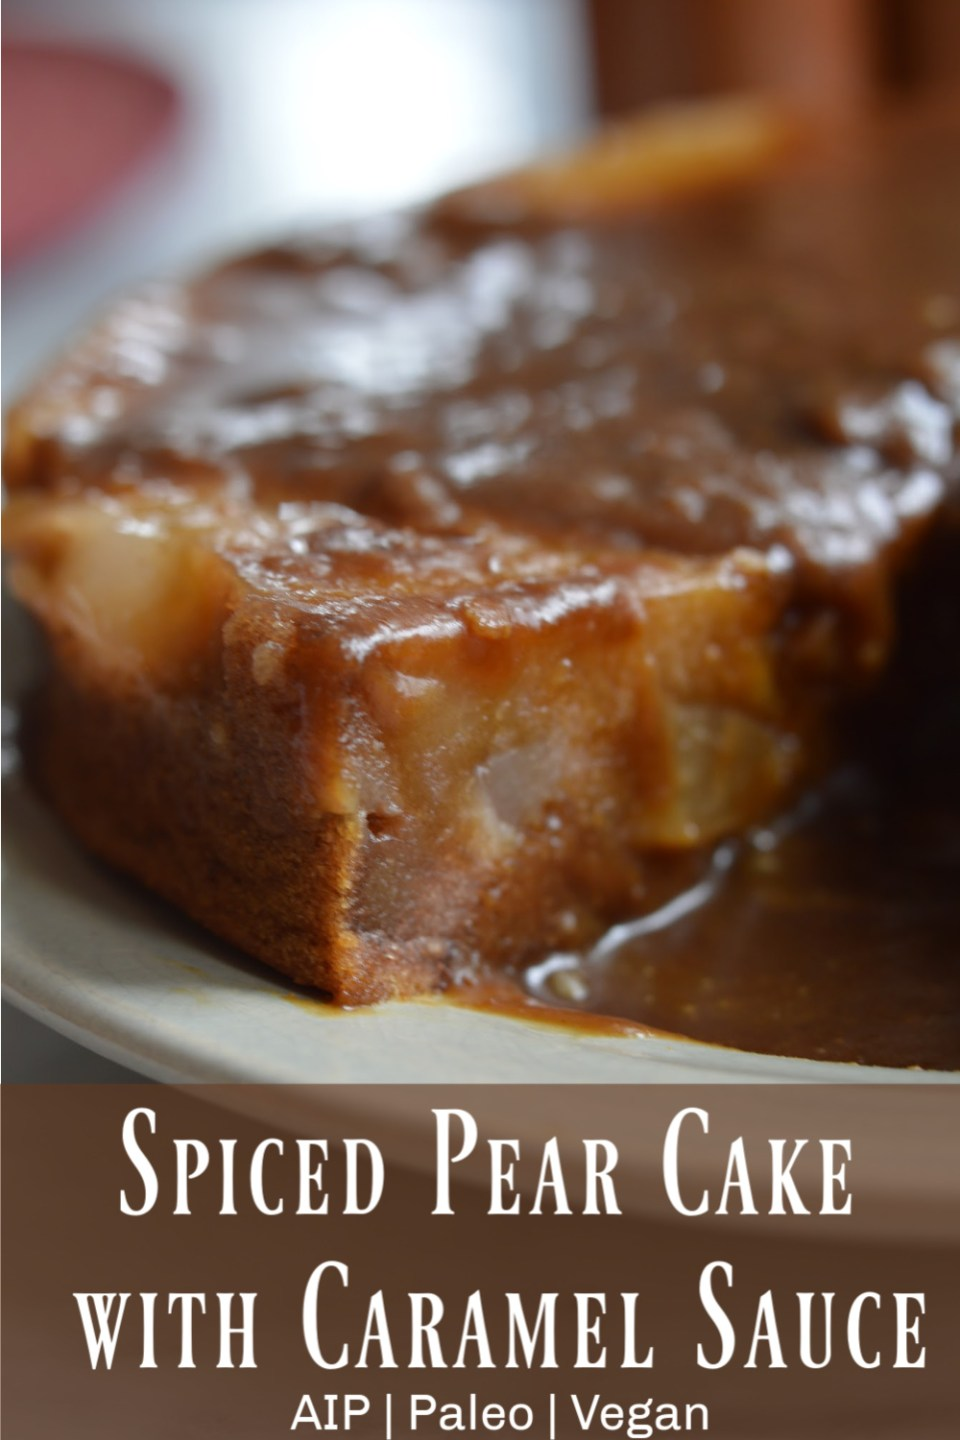 Spiced Pear Cake with Caramel Sauce (AIP)